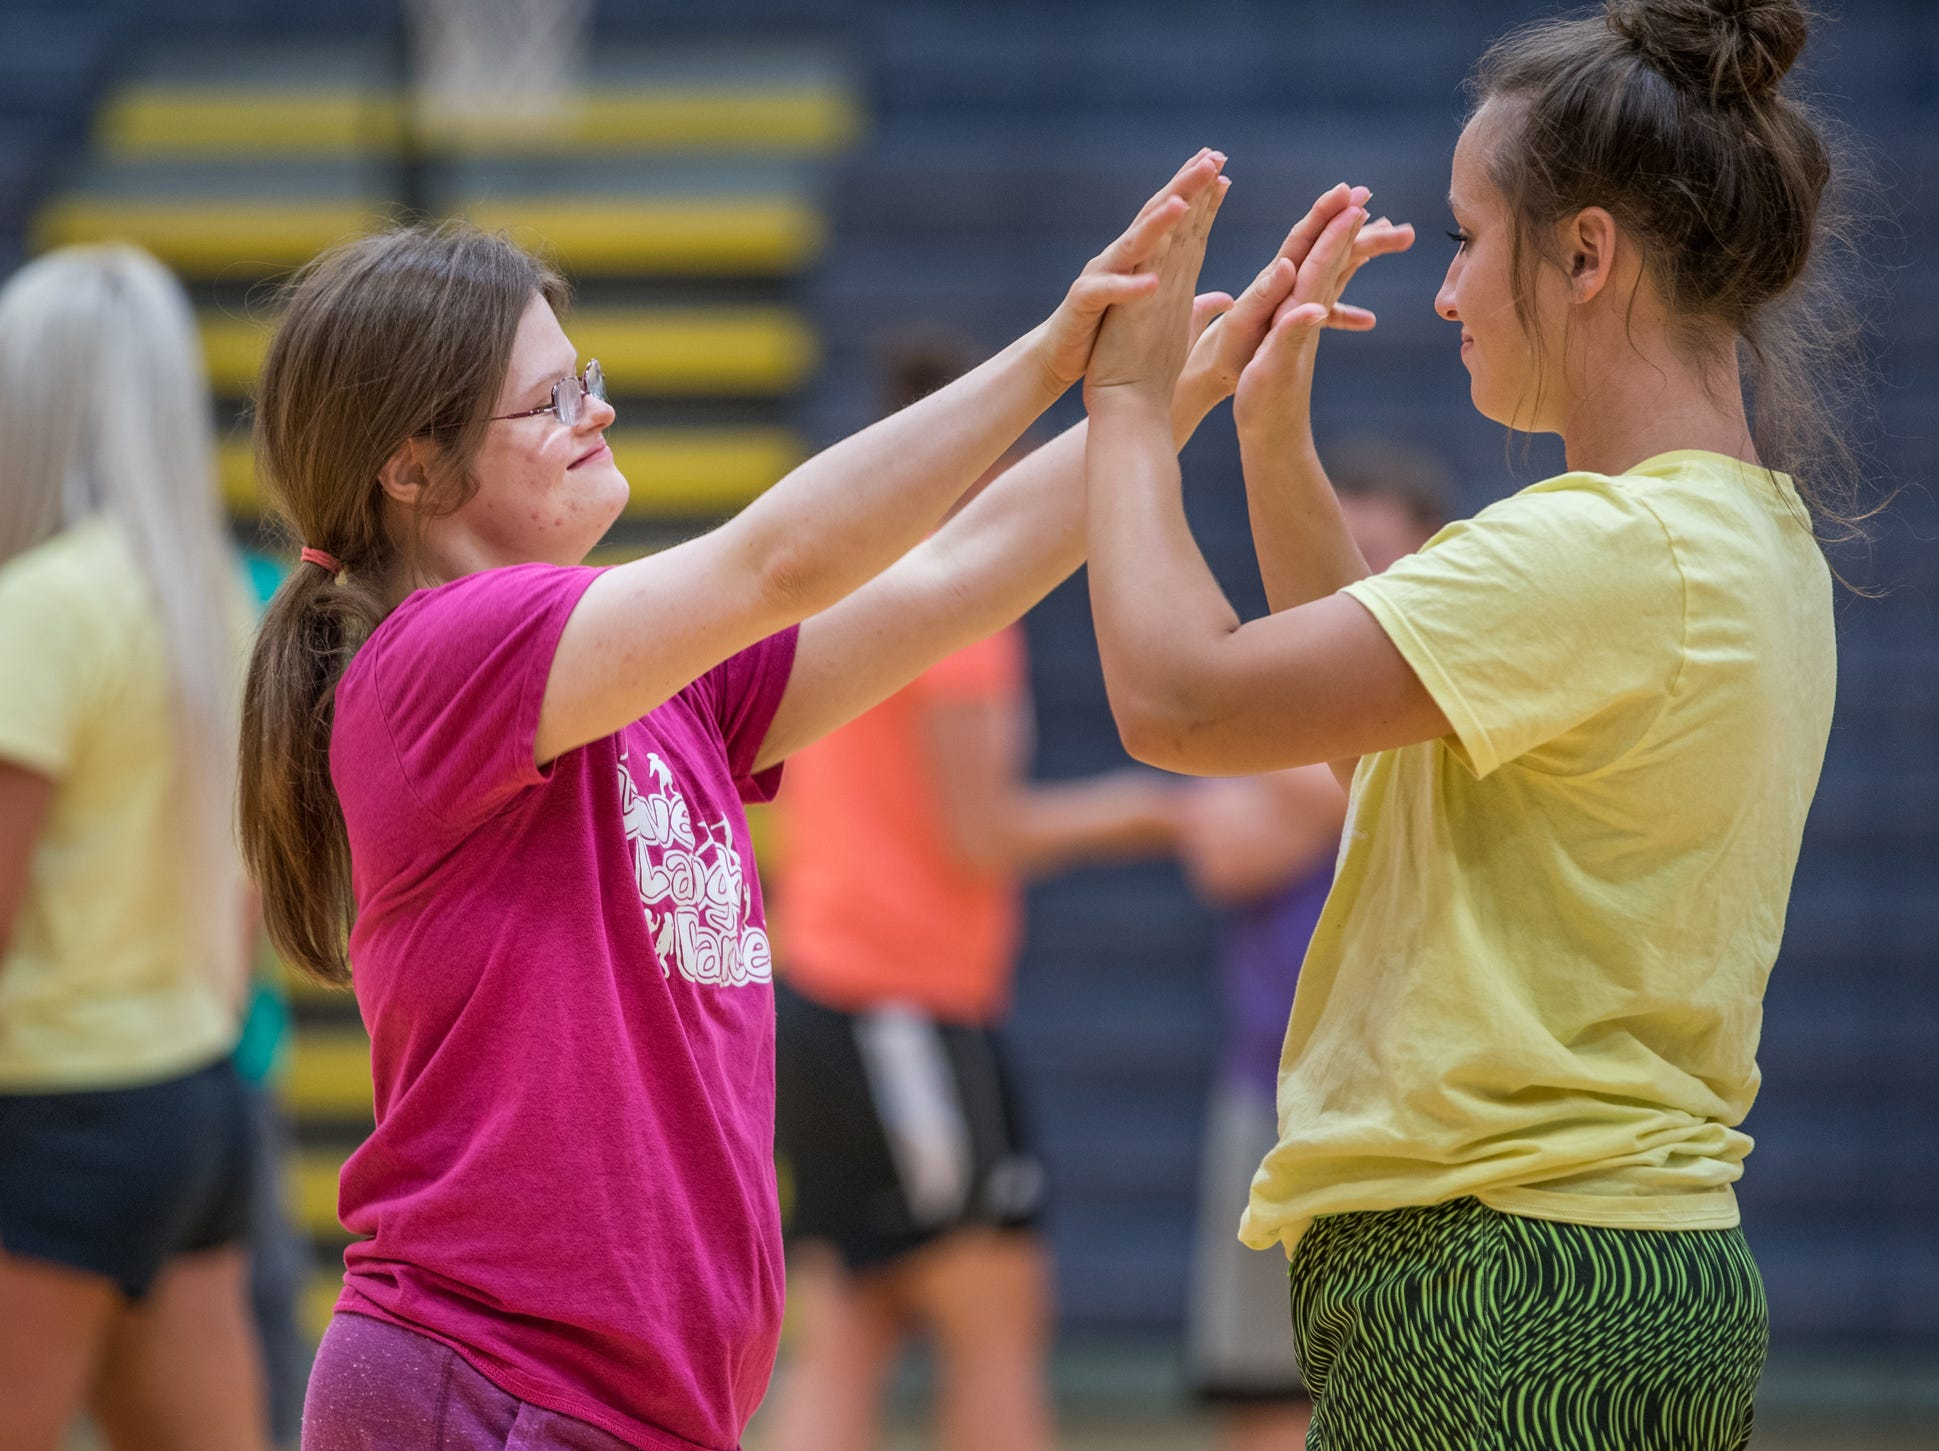 """Mickey Deputy (left) and her dance partner, Kelsey Edington, a volunteer, cheer after a dance routine during Live Laugh Dance on Tuesday, July 10, 2018. """"She just has the biggest personality,"""" said Edington. """"She's super sassy and makes me laugh."""""""